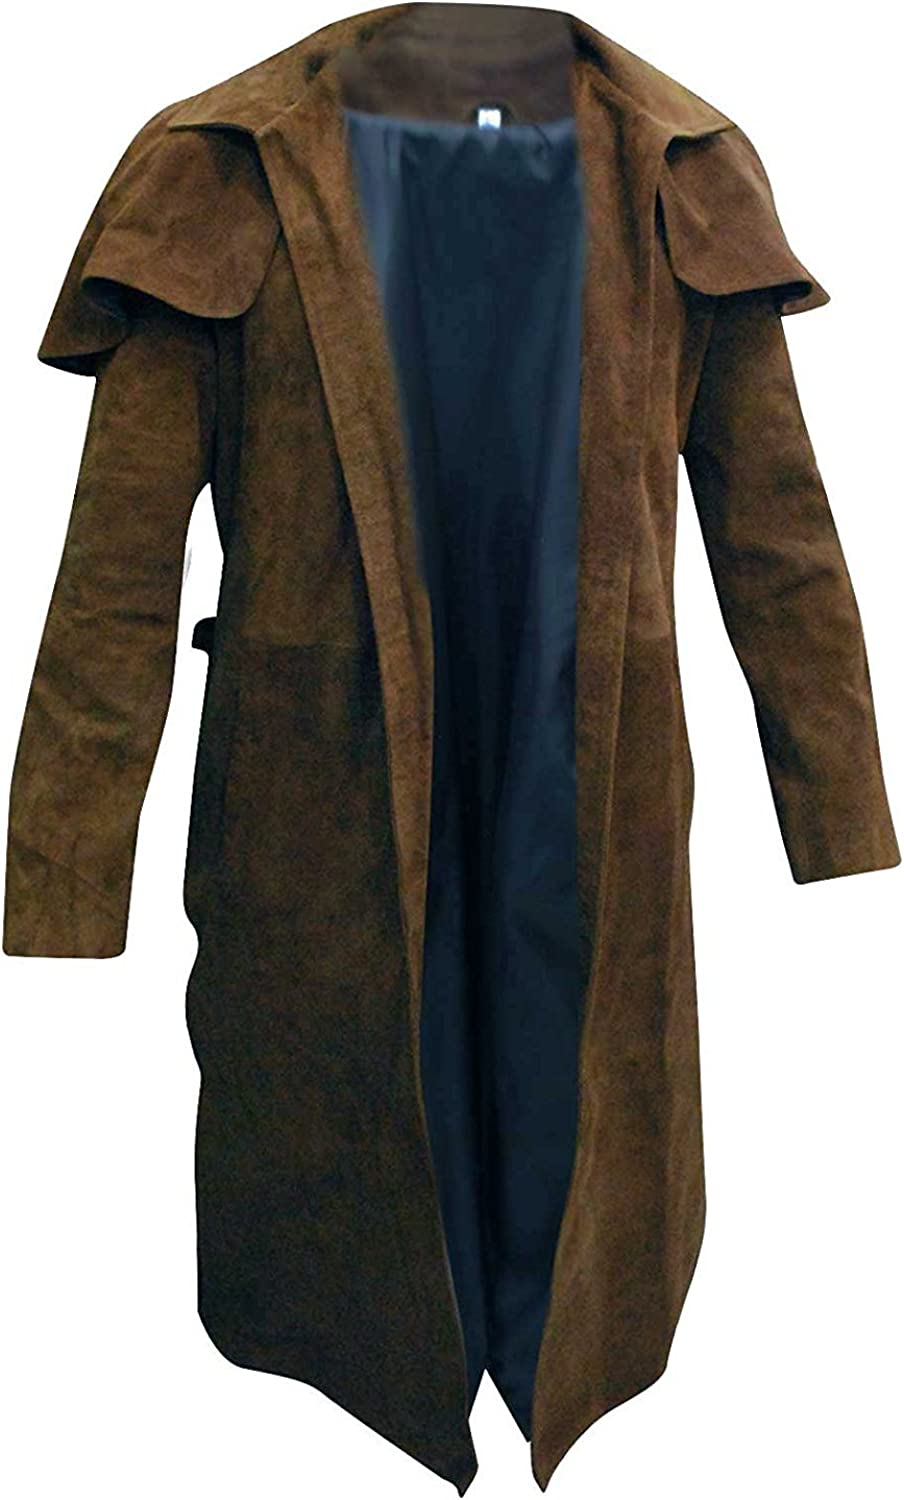 New Vegas A7 Armor Classic Veteran Ranger Brown Suede Leather Trench Duster Coat for Men